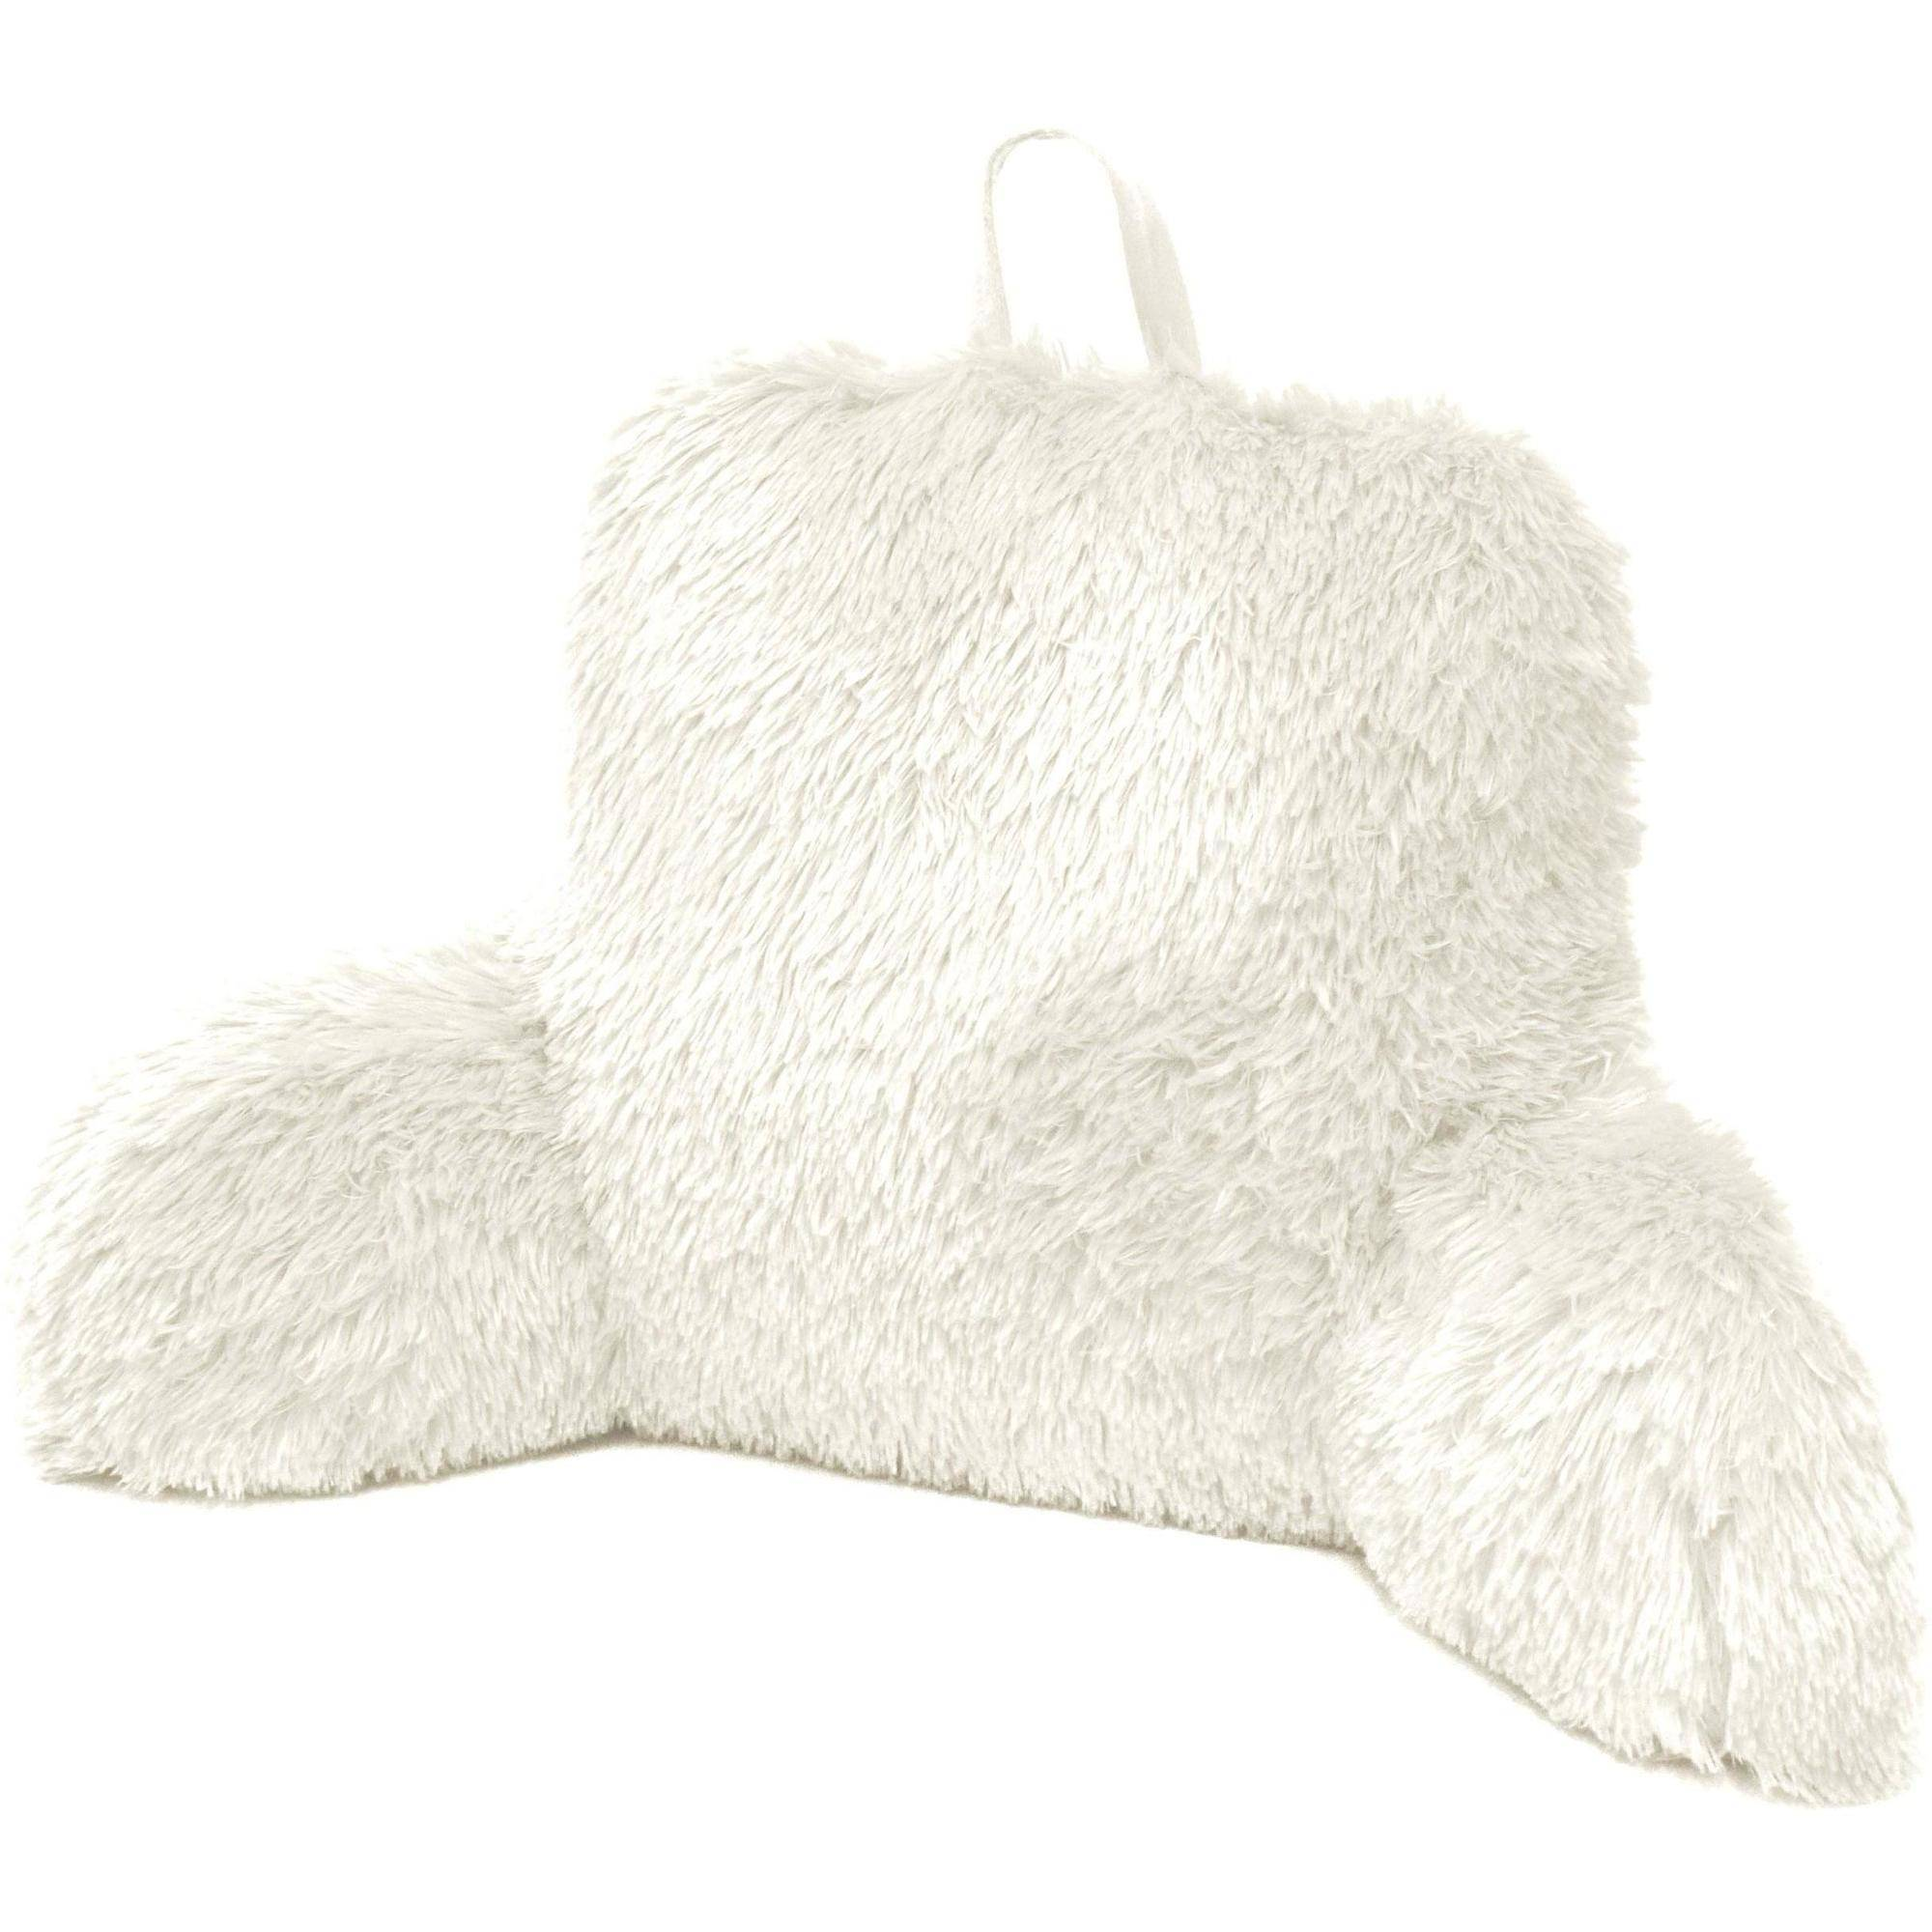 Pillow Back With Arms Walmart Bing Images